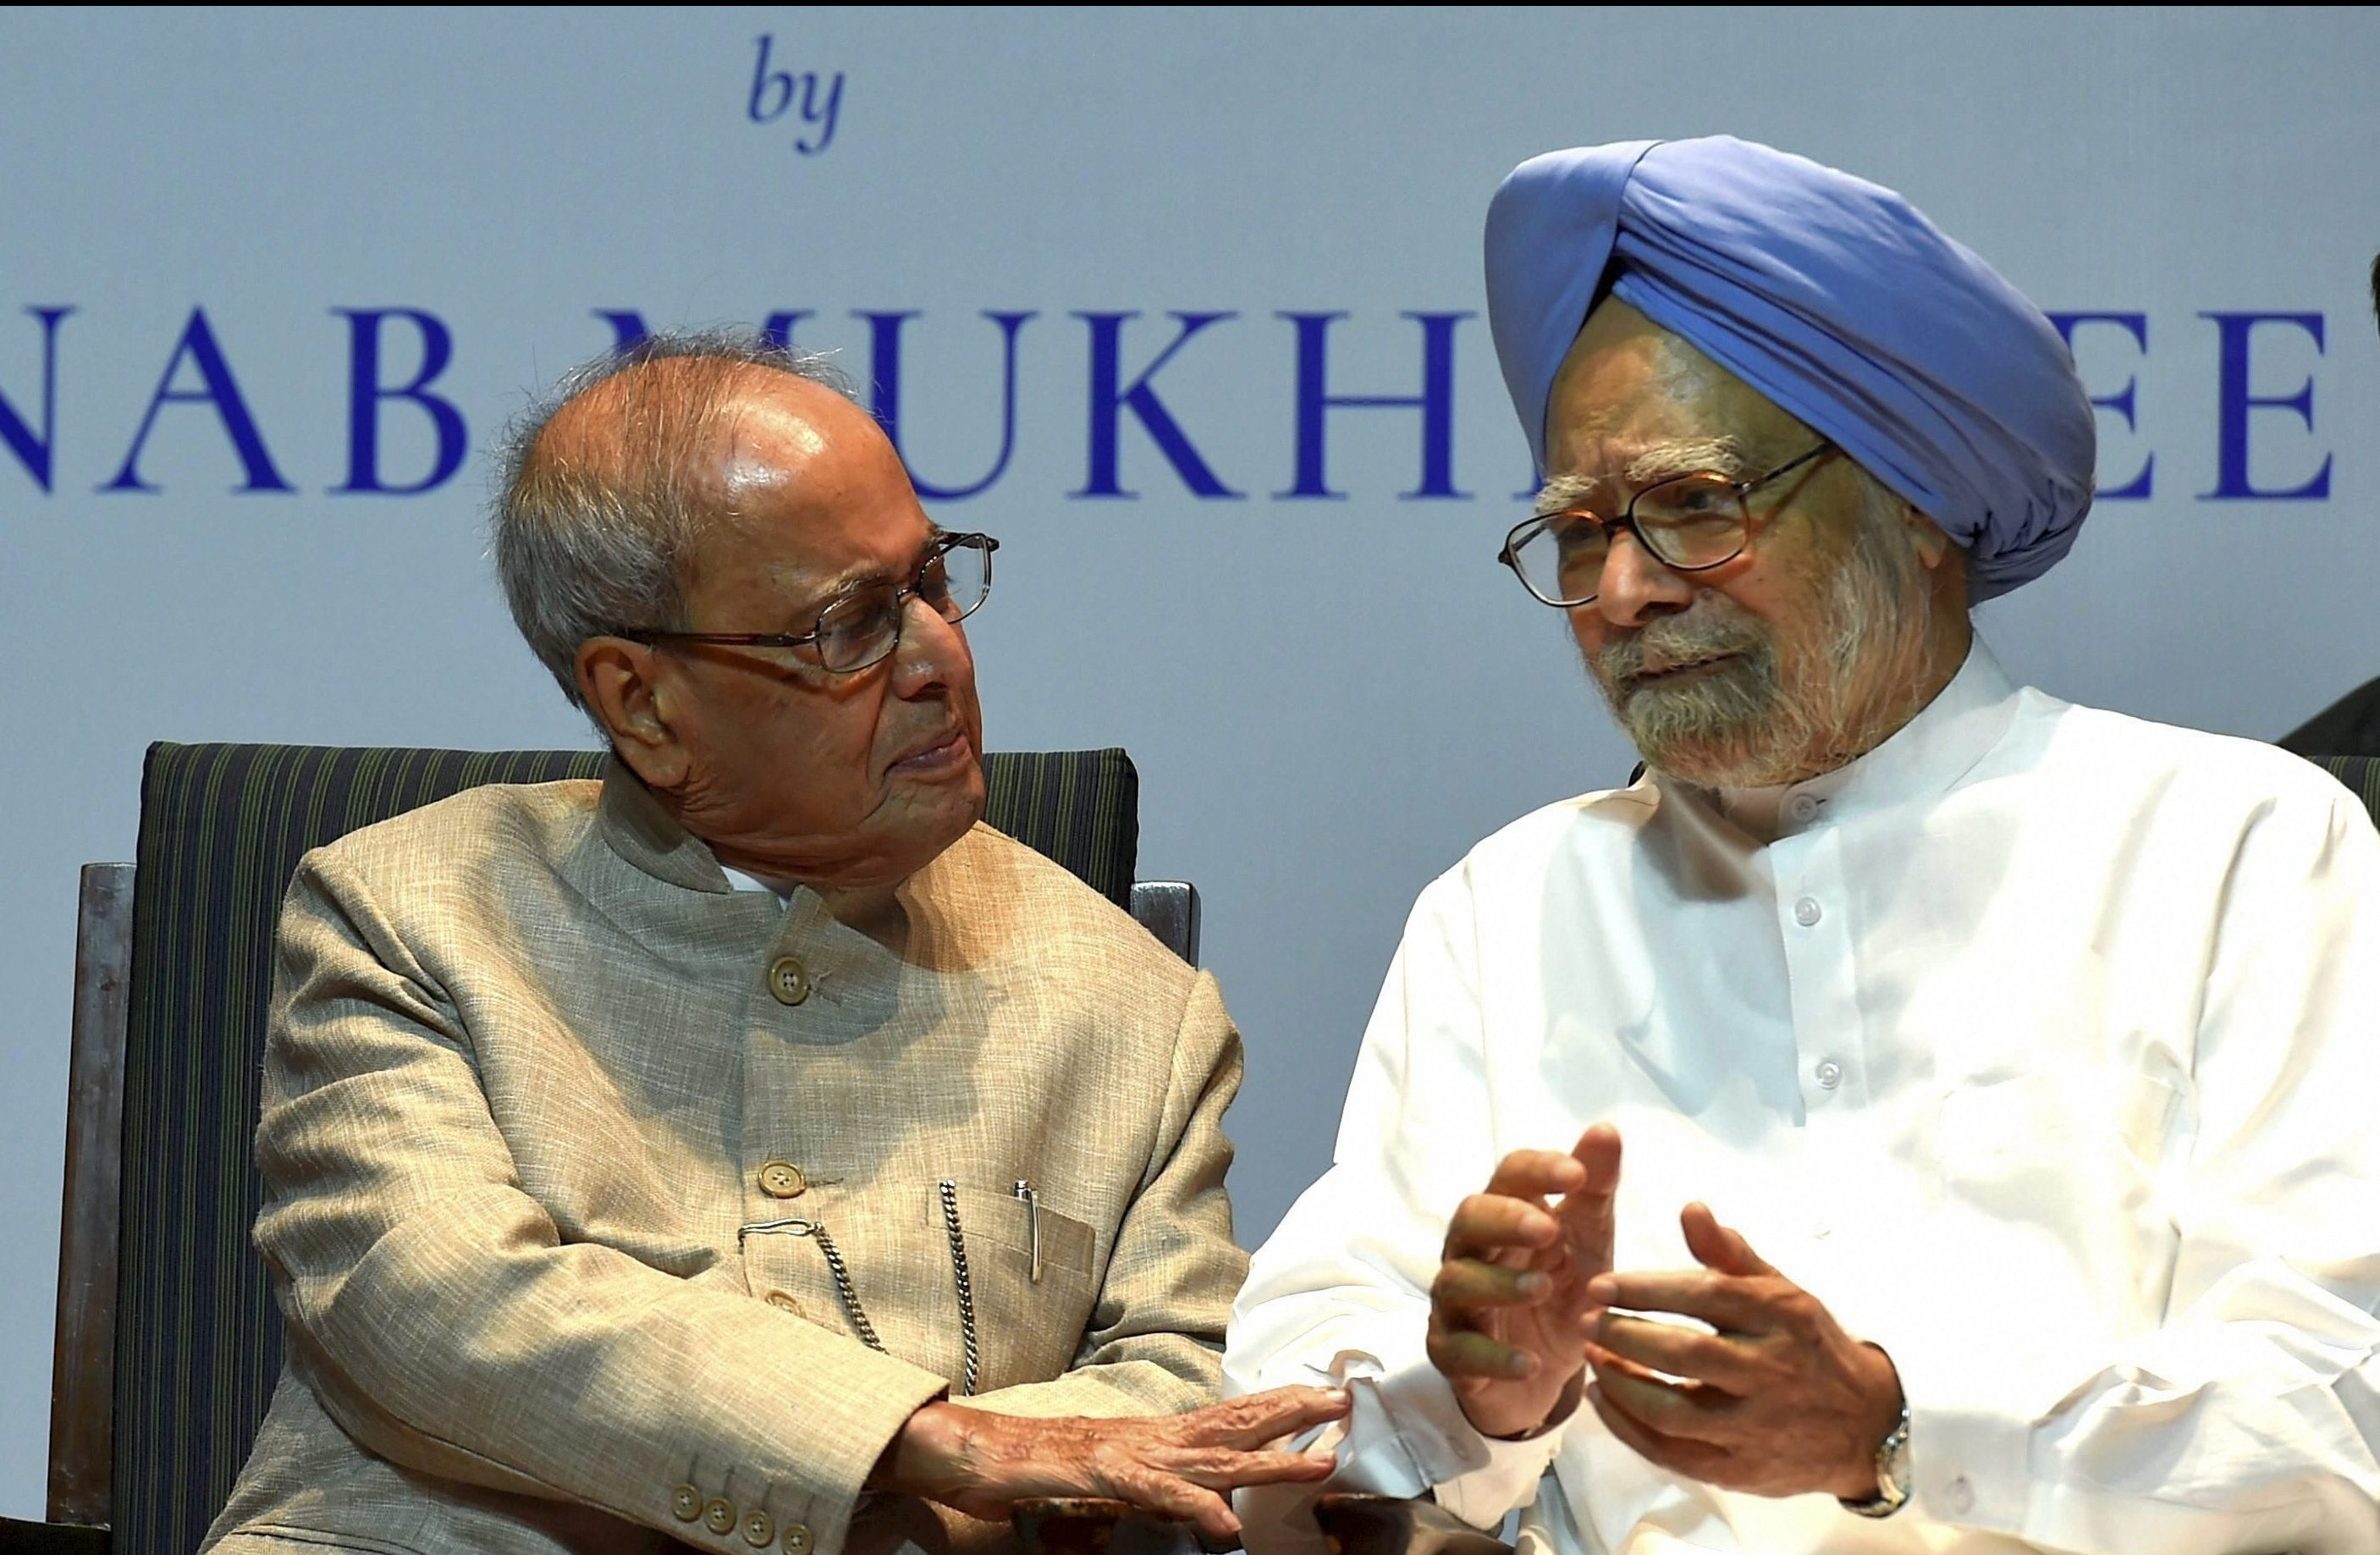 """New Delhi: Former President Pranab Mukherjee with former prime minister Manmohan Singh at the release of his book """"The Coalition Years"""" at a function in New Delhi on Friday. PTI Photo by Atul Yadav (PTI10_13_2017_000129B)"""